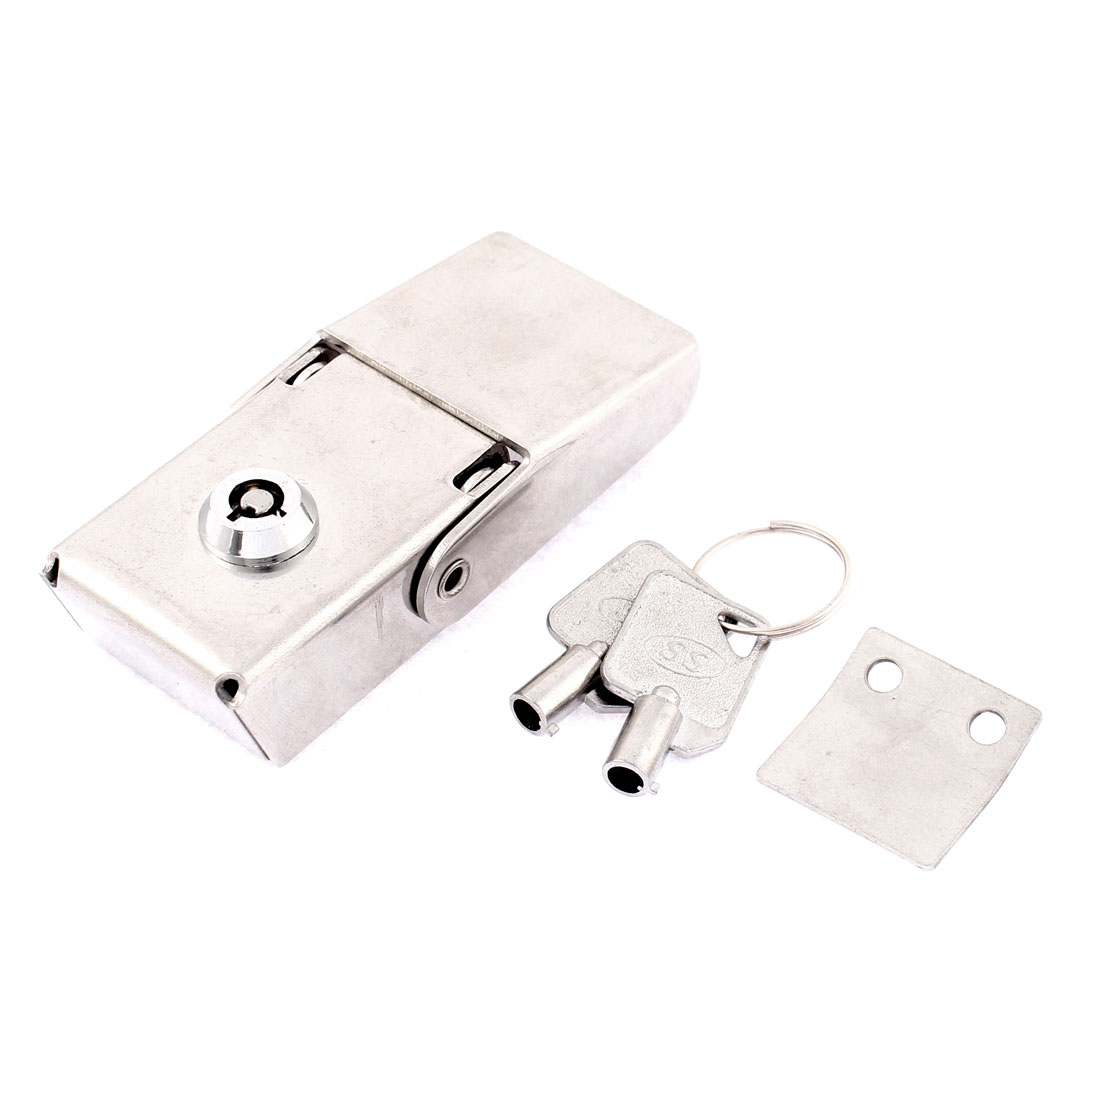 Hardware Boxes Clasp Toggle Catch Latch Silver Tone